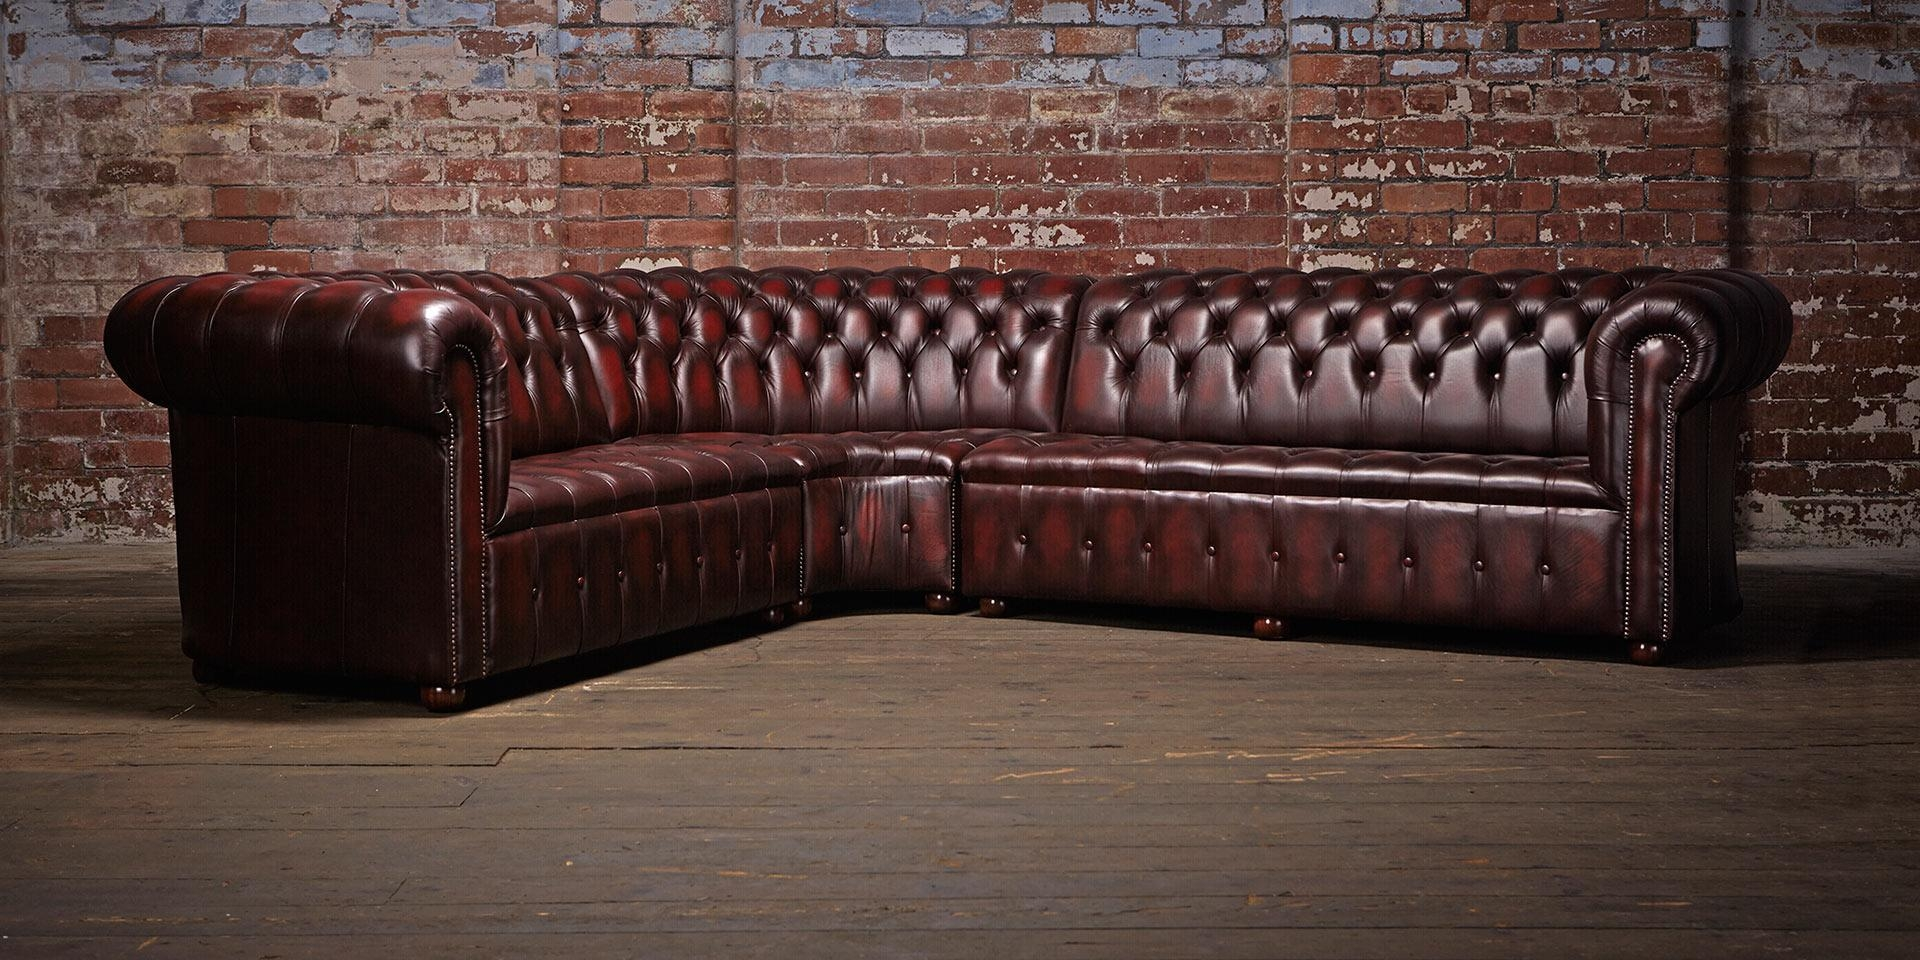 How To Buy A Chesterfield Sofa? – Bestartisticinteriors With Regard To Red Leather Chesterfield Chairs (Image 14 of 20)